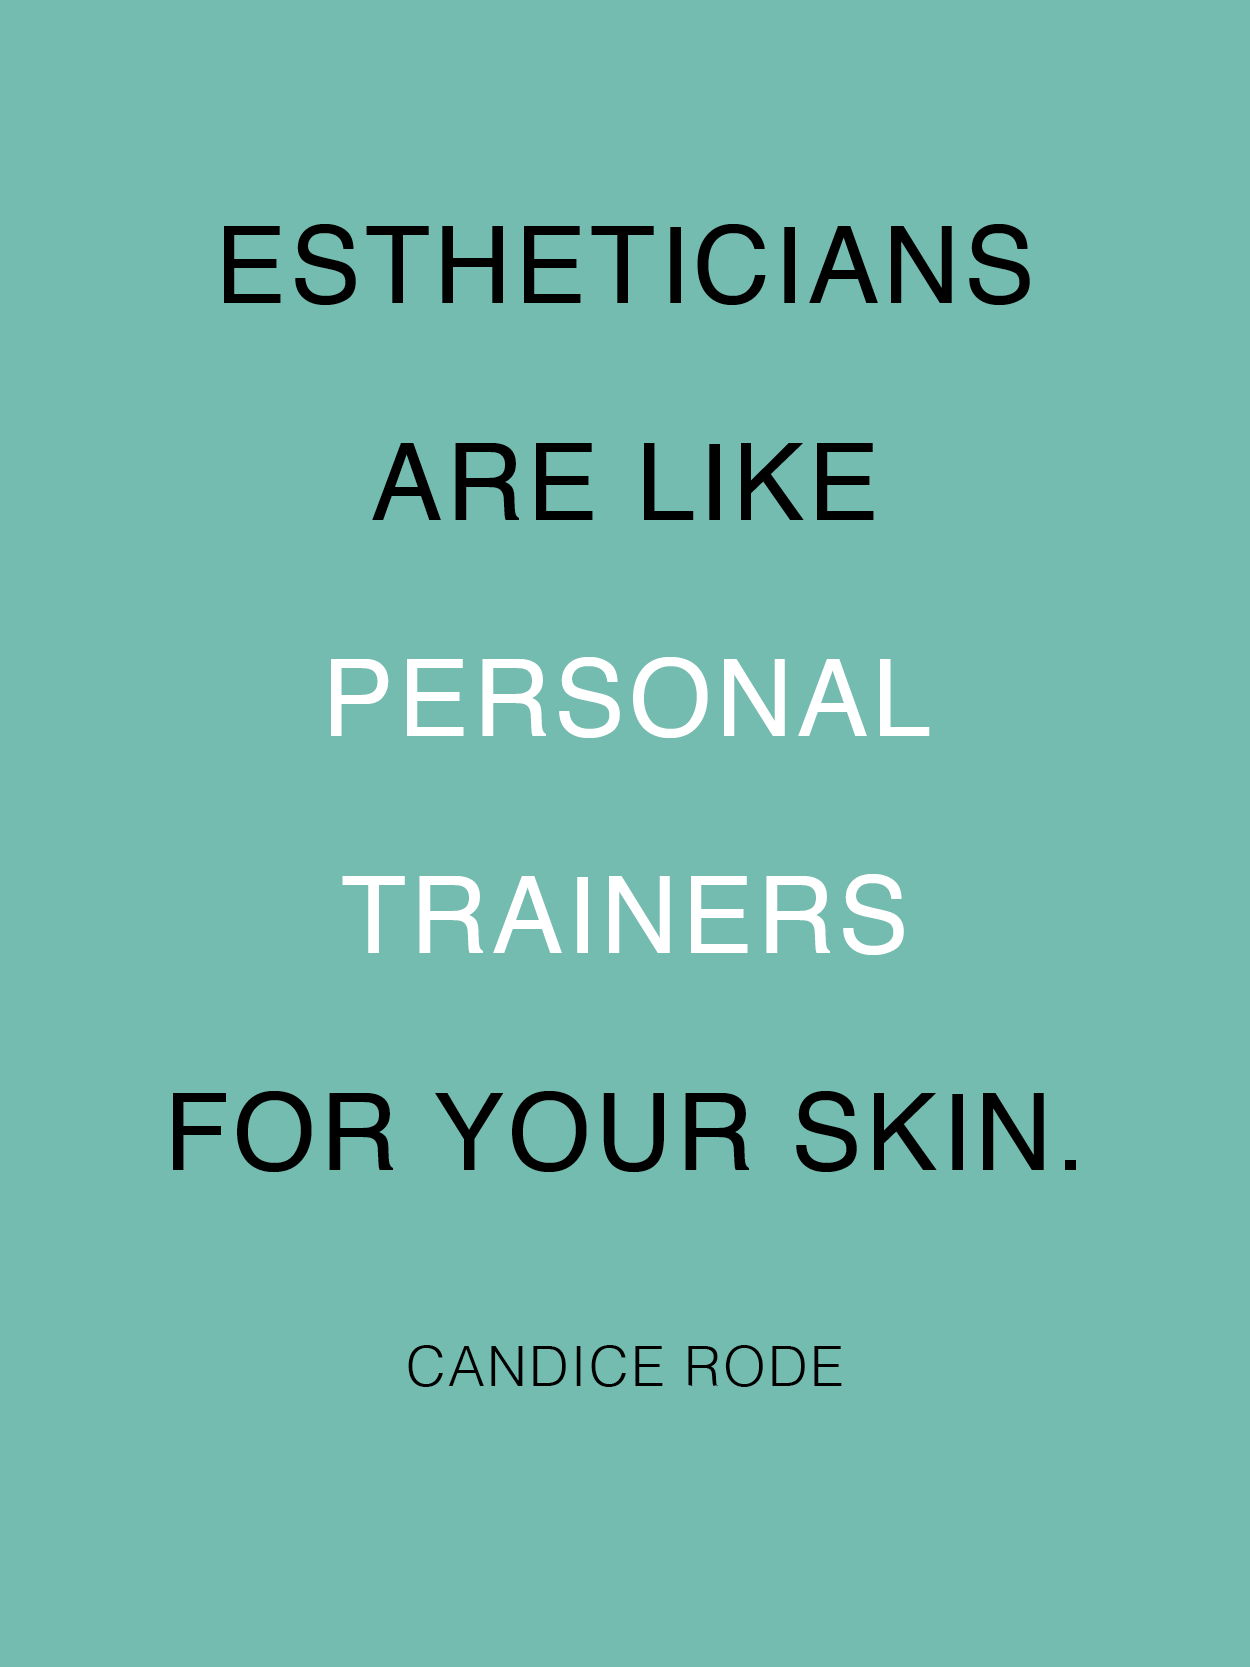 5 Quotes About Facials That Will Help You Understand How Important They Are Facelogic Upland